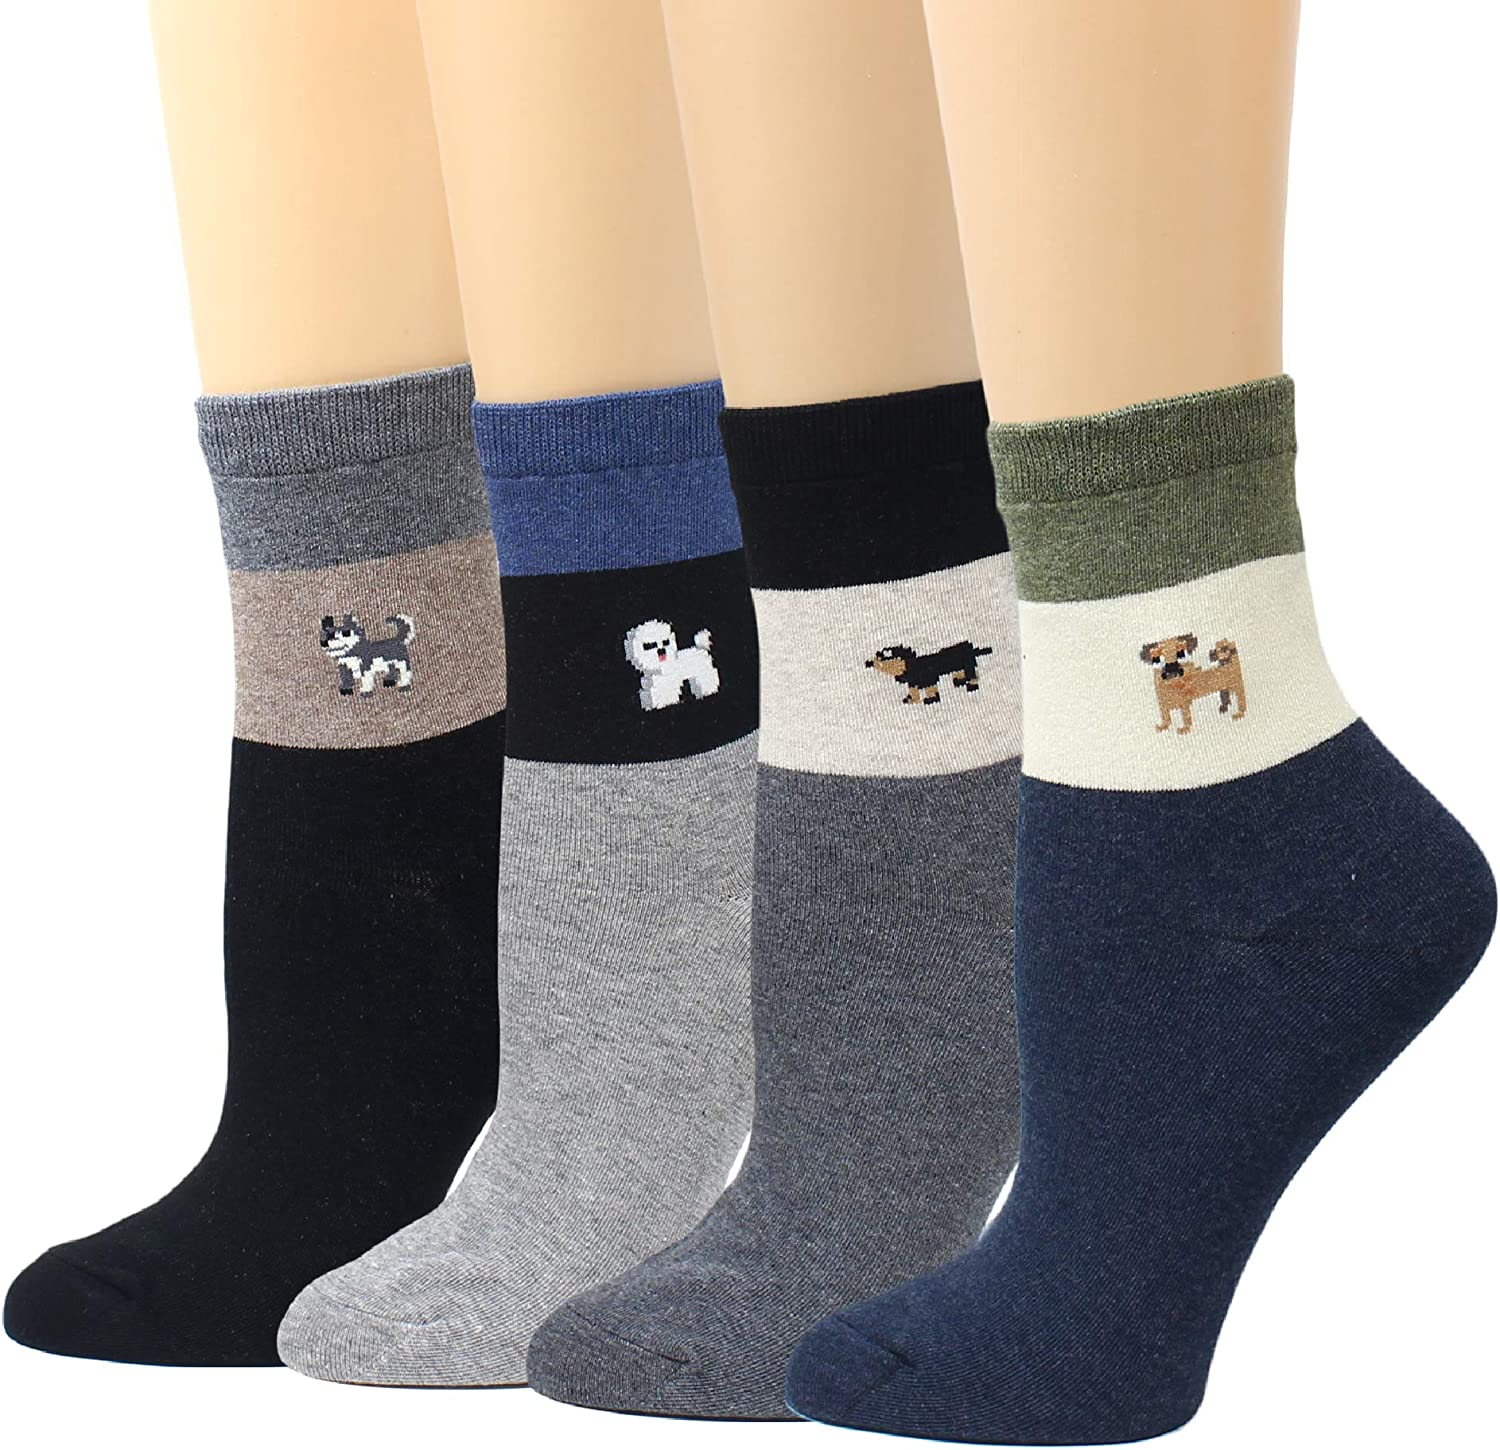 4-8 Pairs Ladies Cotton Socks Elasthan Free Roller Cuff Funky Design Multicolor